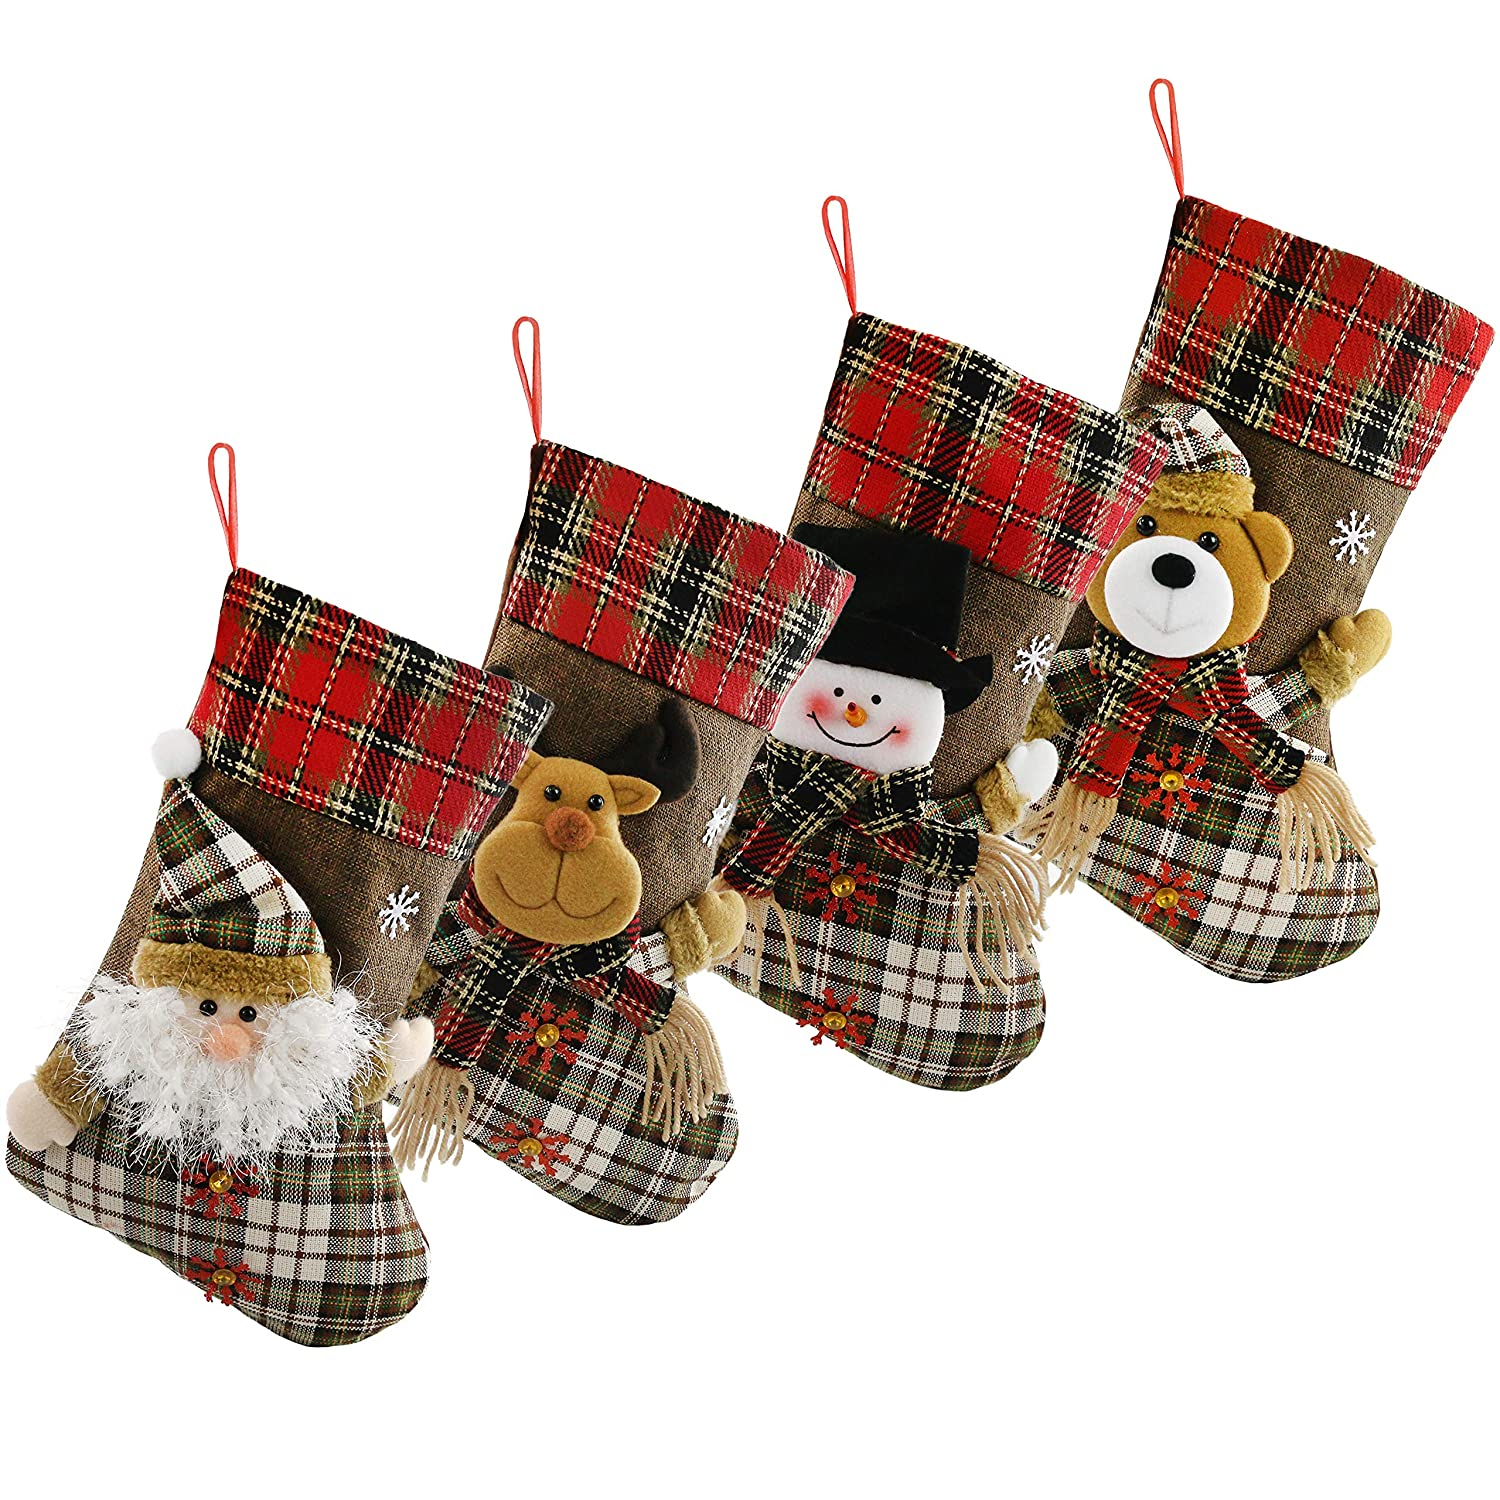 01 Houwsbaby 4 pcs Felt Christmas Stockings 3D Santa Snowman Bear and Reindeer Green Cuff Xmas Holders Gift Bag for Ornament Party Accessory with Golden Ball Red 17 inches